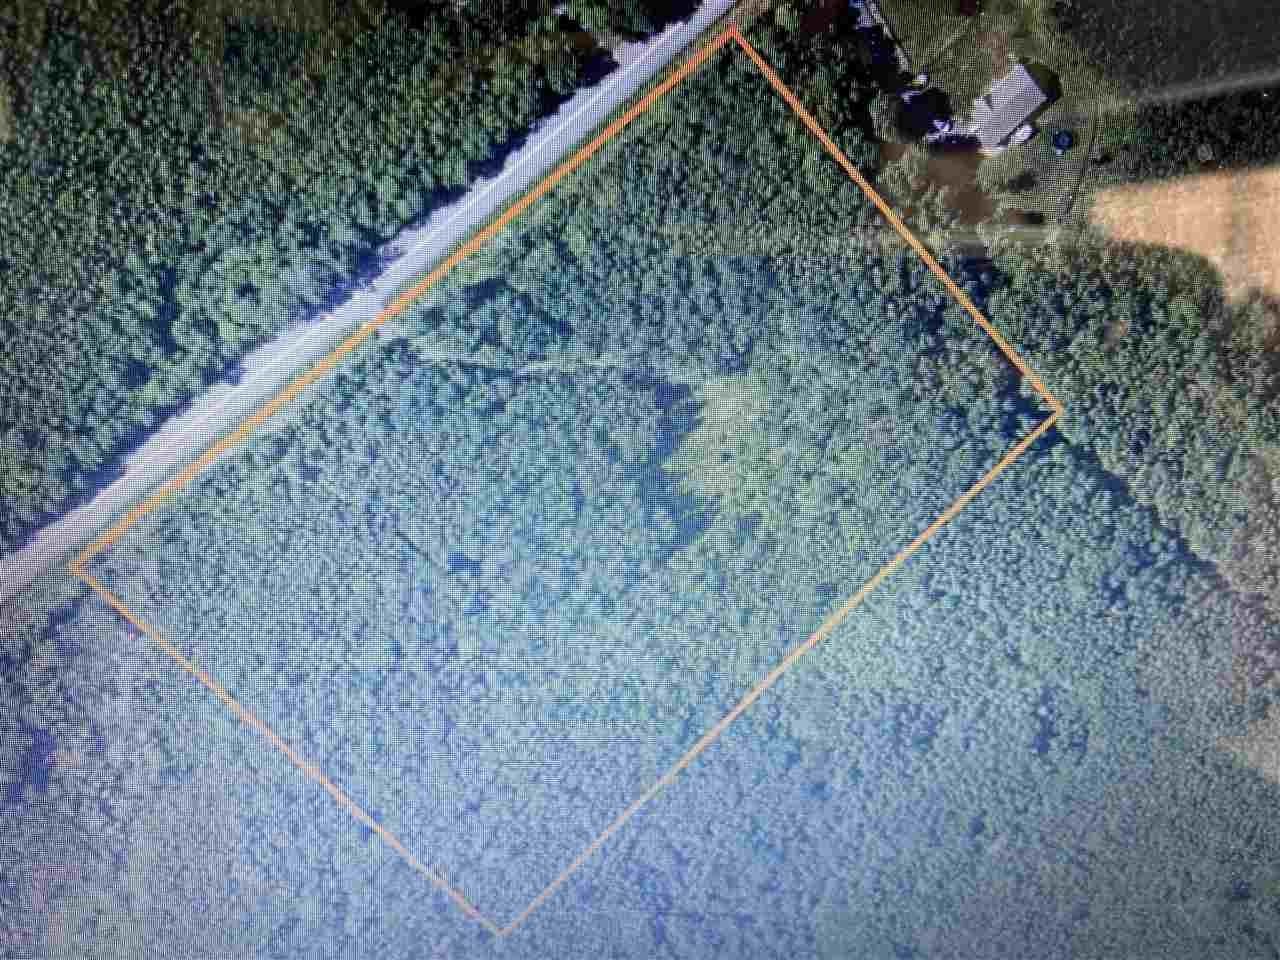 Main Photo: 38 Stewart Road in Lyons Brook: 108-Rural Pictou County Vacant Land for sale (Northern Region)  : MLS®# 202011938